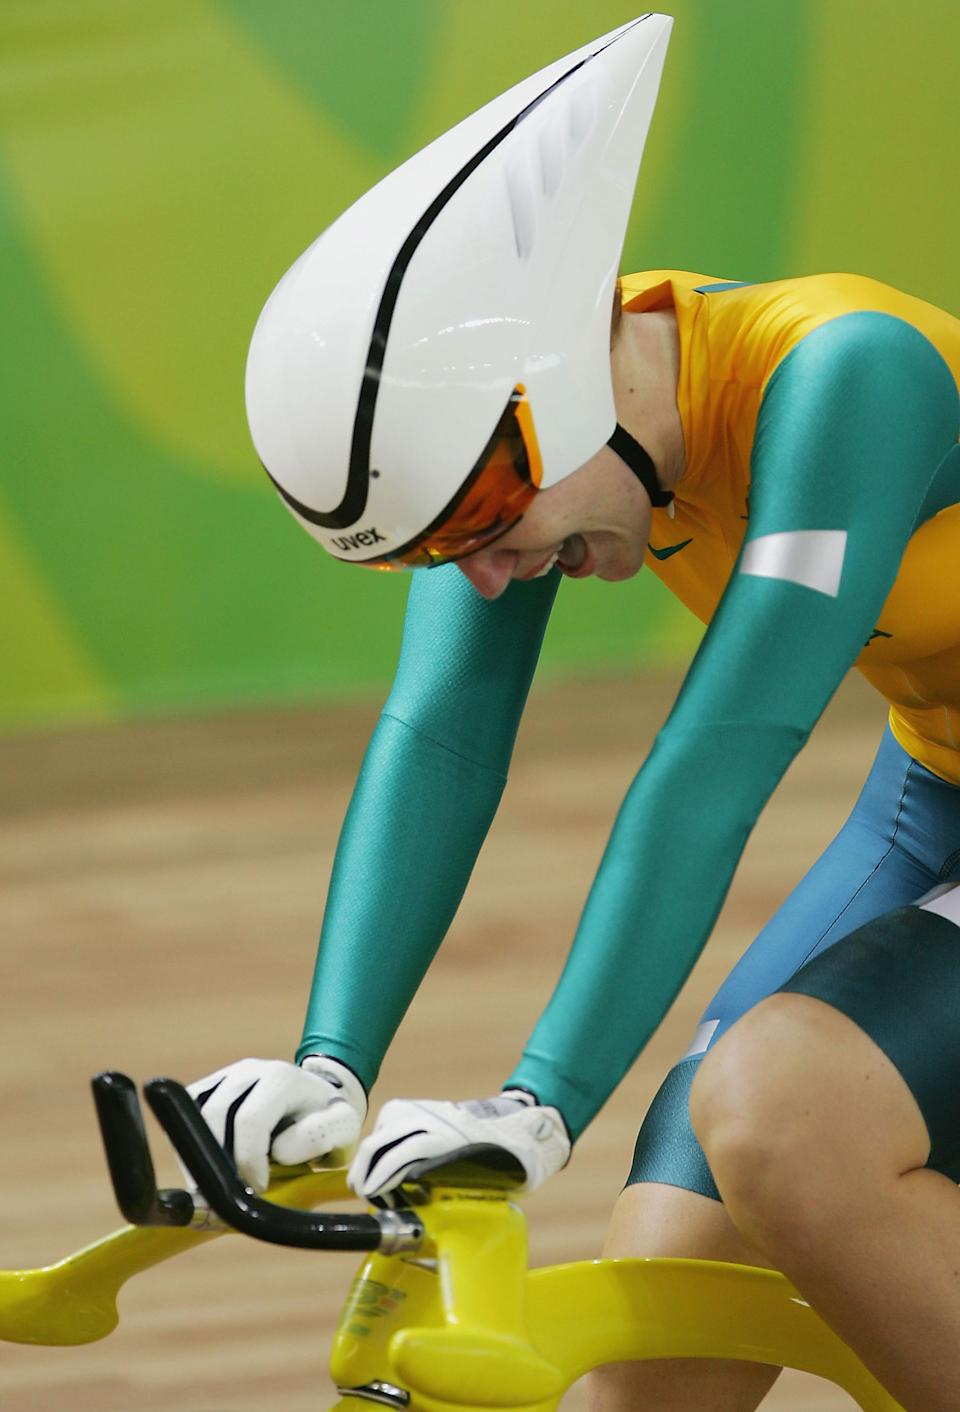 ATHENS - AUGUST 20: Anna Meares of Australia celebrates after finishing first and winning the gold medal in the women's track cycling 500 metre time trial final on August 20, 2004 during the Athens 2004 Summer Olympic Games at the Olympic Velodrome within the Olympic Sports Complex in Athens, Greece. (Photo by Donald Miralle/Getty Images)